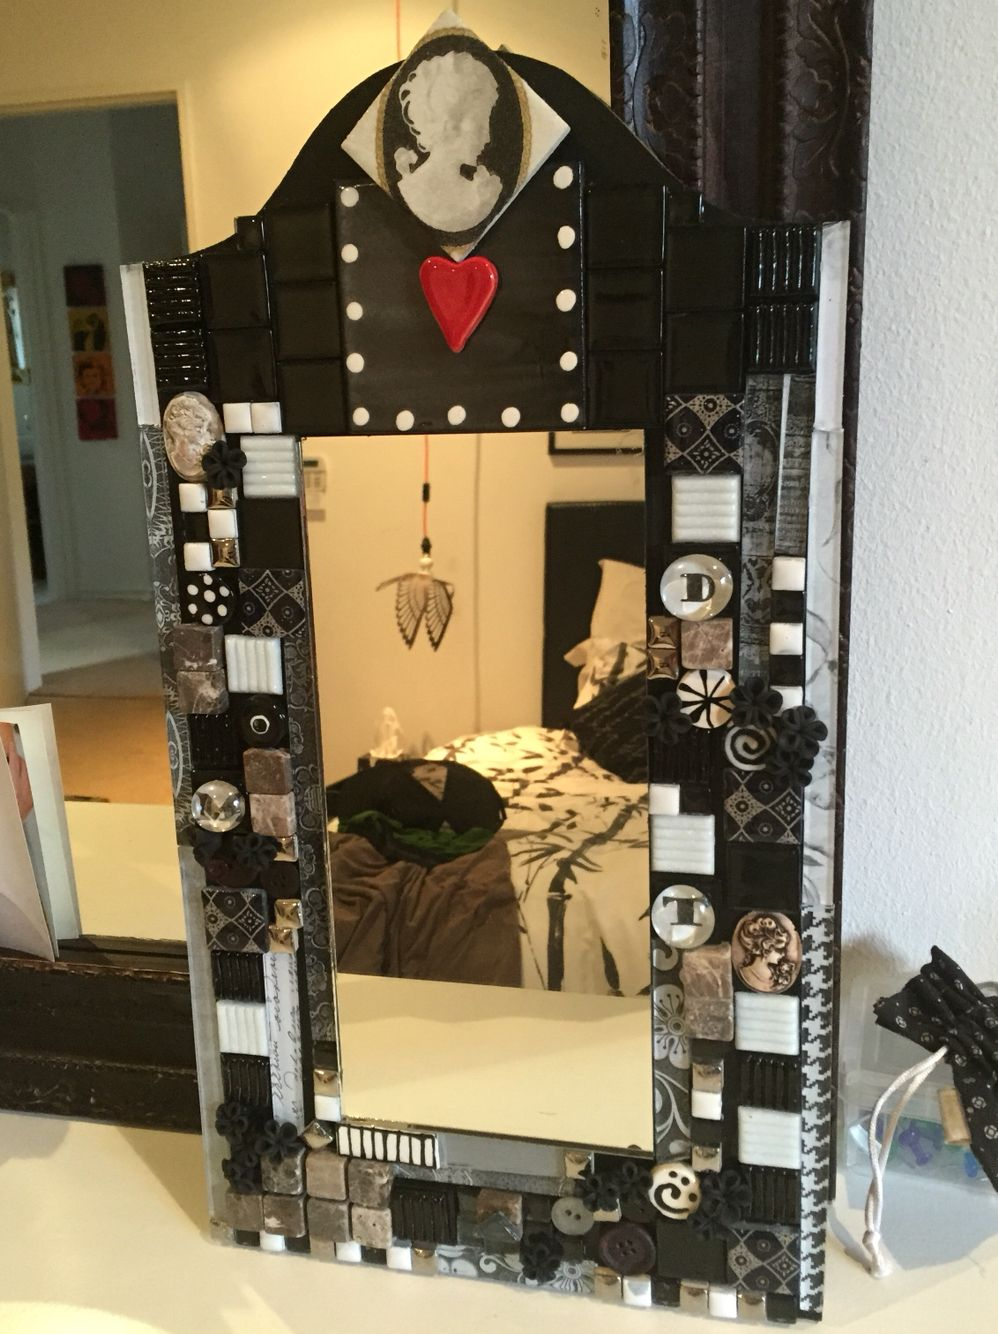 Multimedia and mosaic mirror